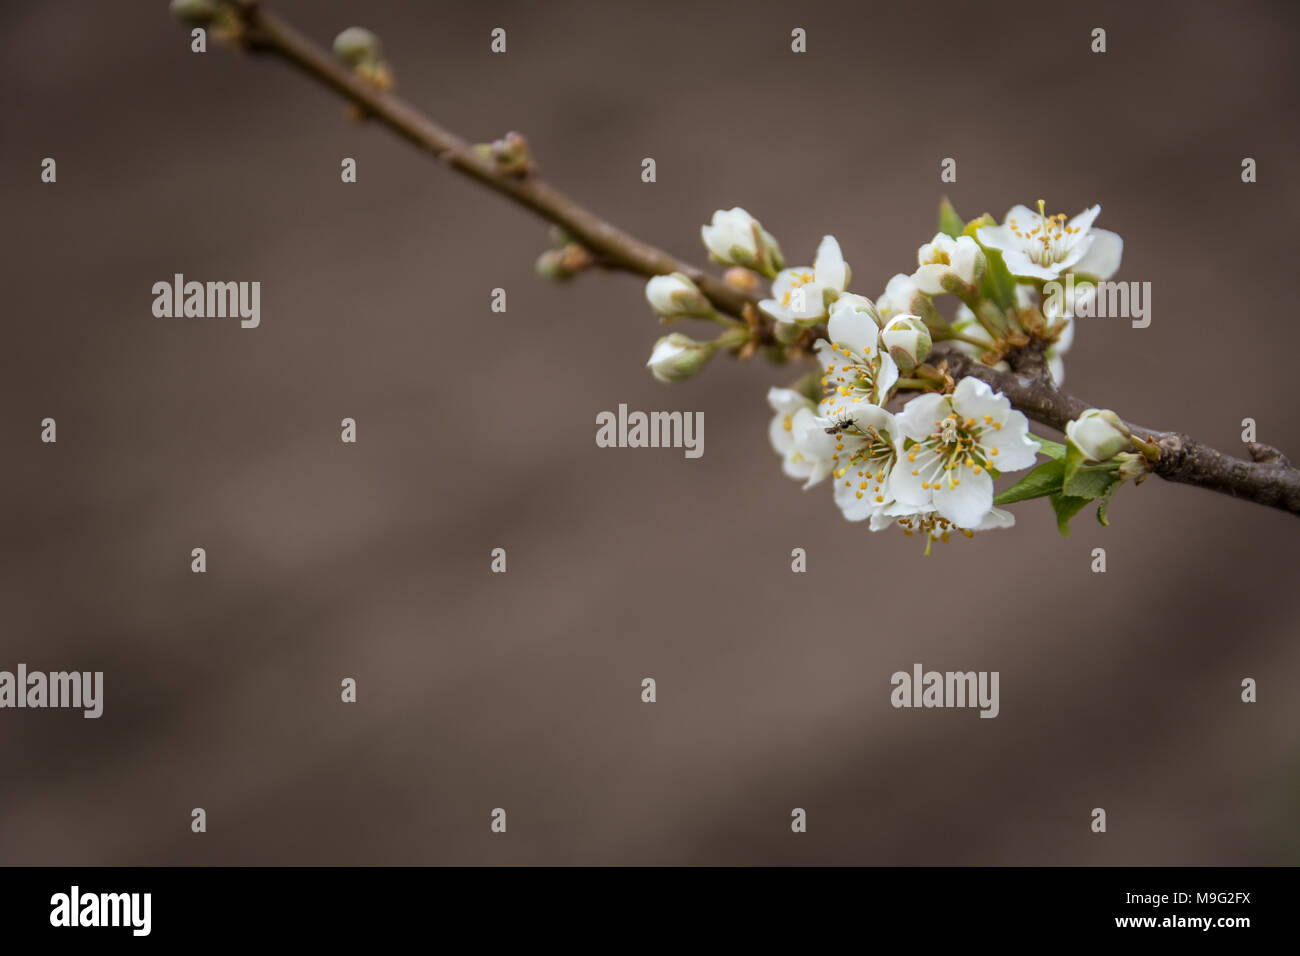 Blooming Plum Tree Branch Covered With Beautiful White Small Flowers